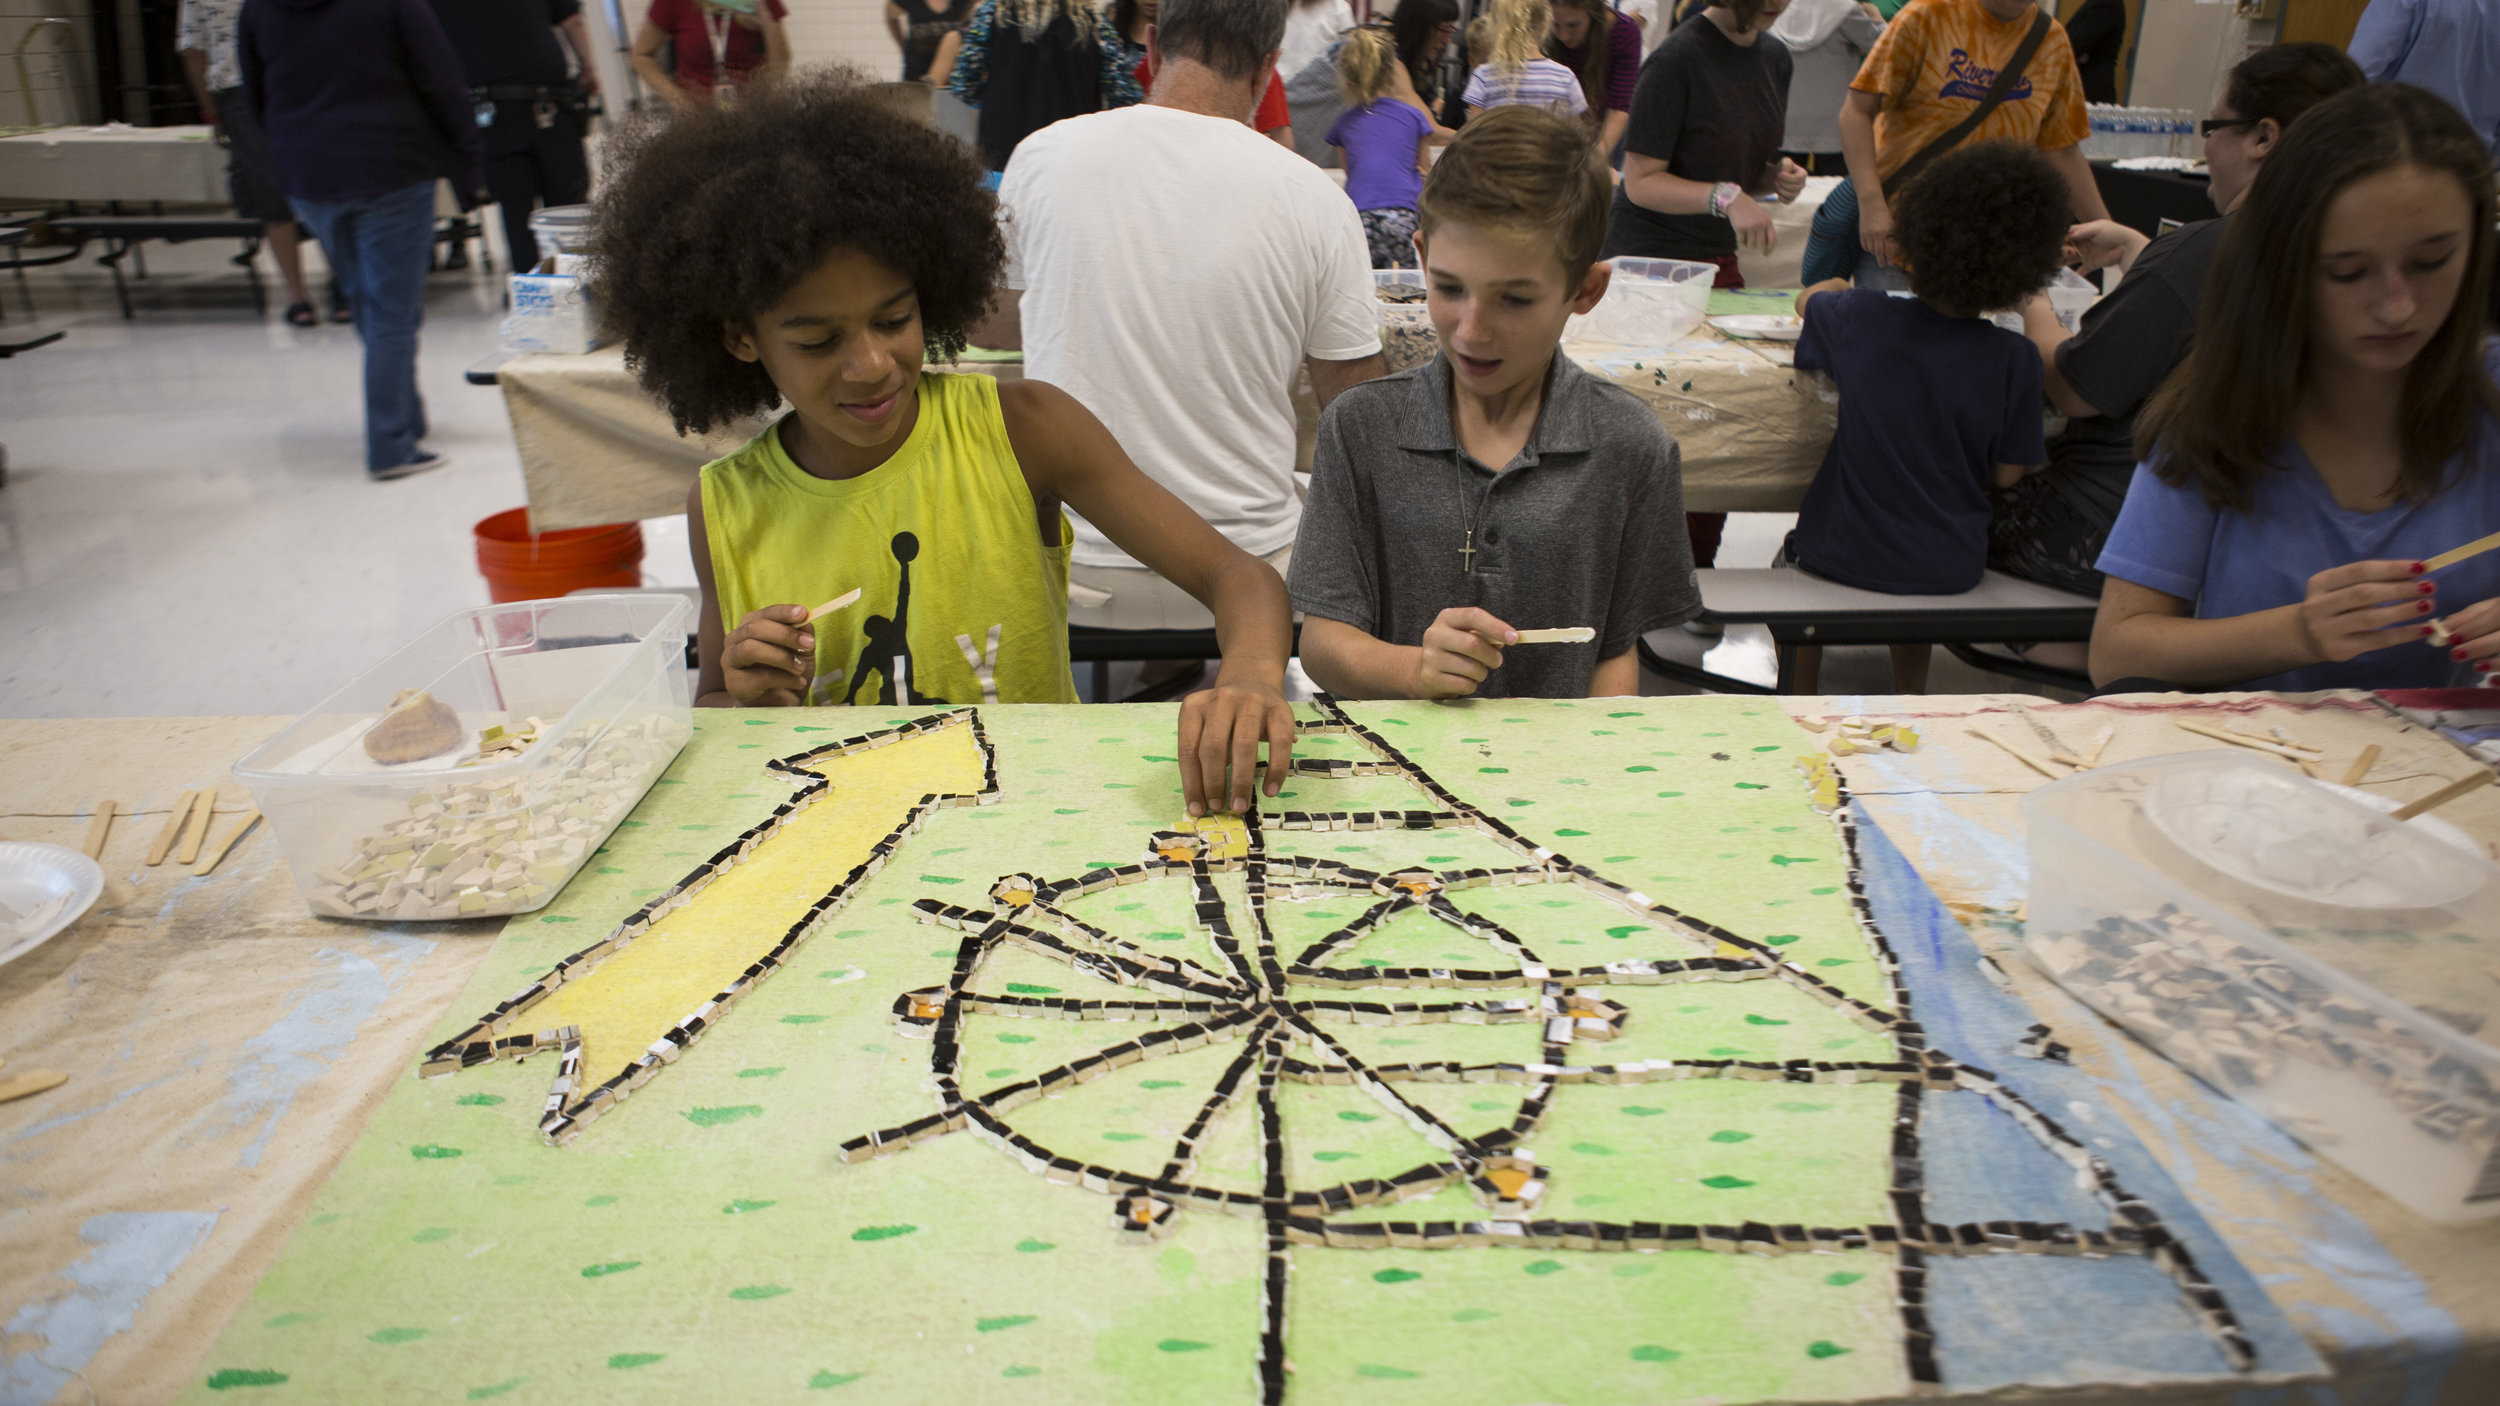 Riverview School District students help to put together a collaborative mosaic as part of an Artist-in-Residence program put on by Pittsburgh Filmmakers/Center for the Arts.